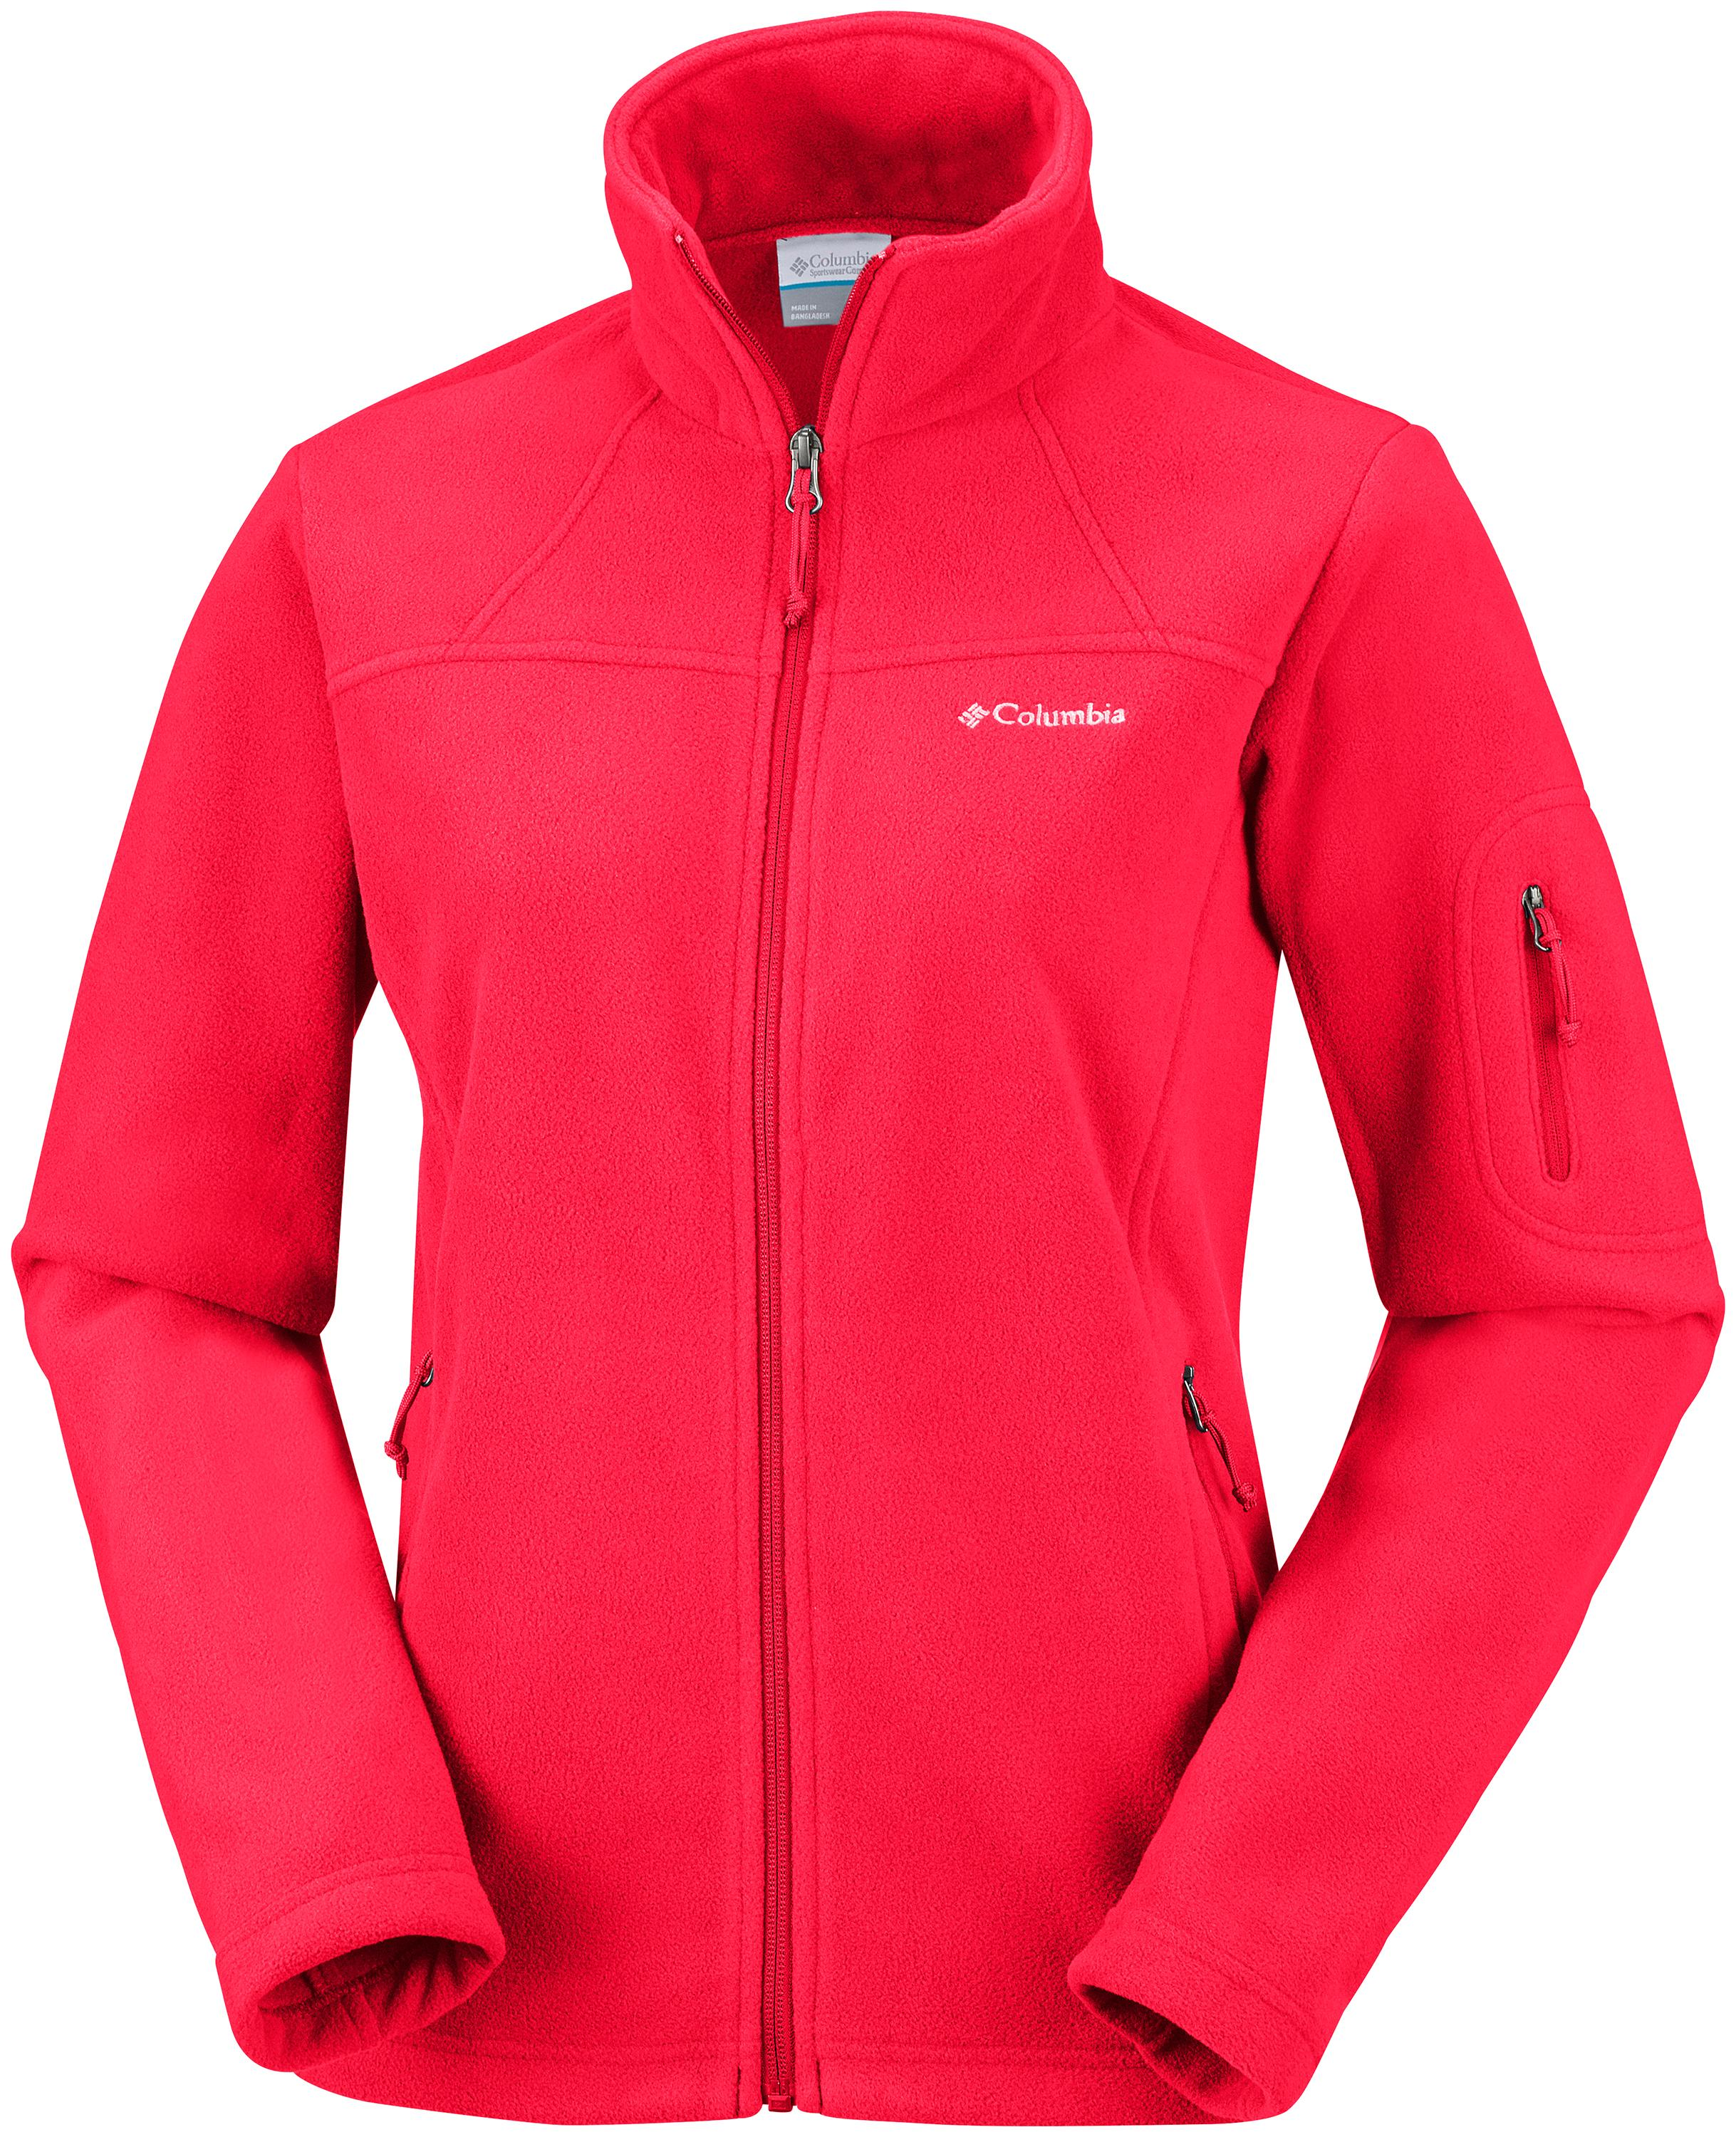 Columbia Fast Trek Ii Jacket Damen Fleecejacke Dark Raspberry Xs Jaket Fleece Abyss Grer Anzeigen